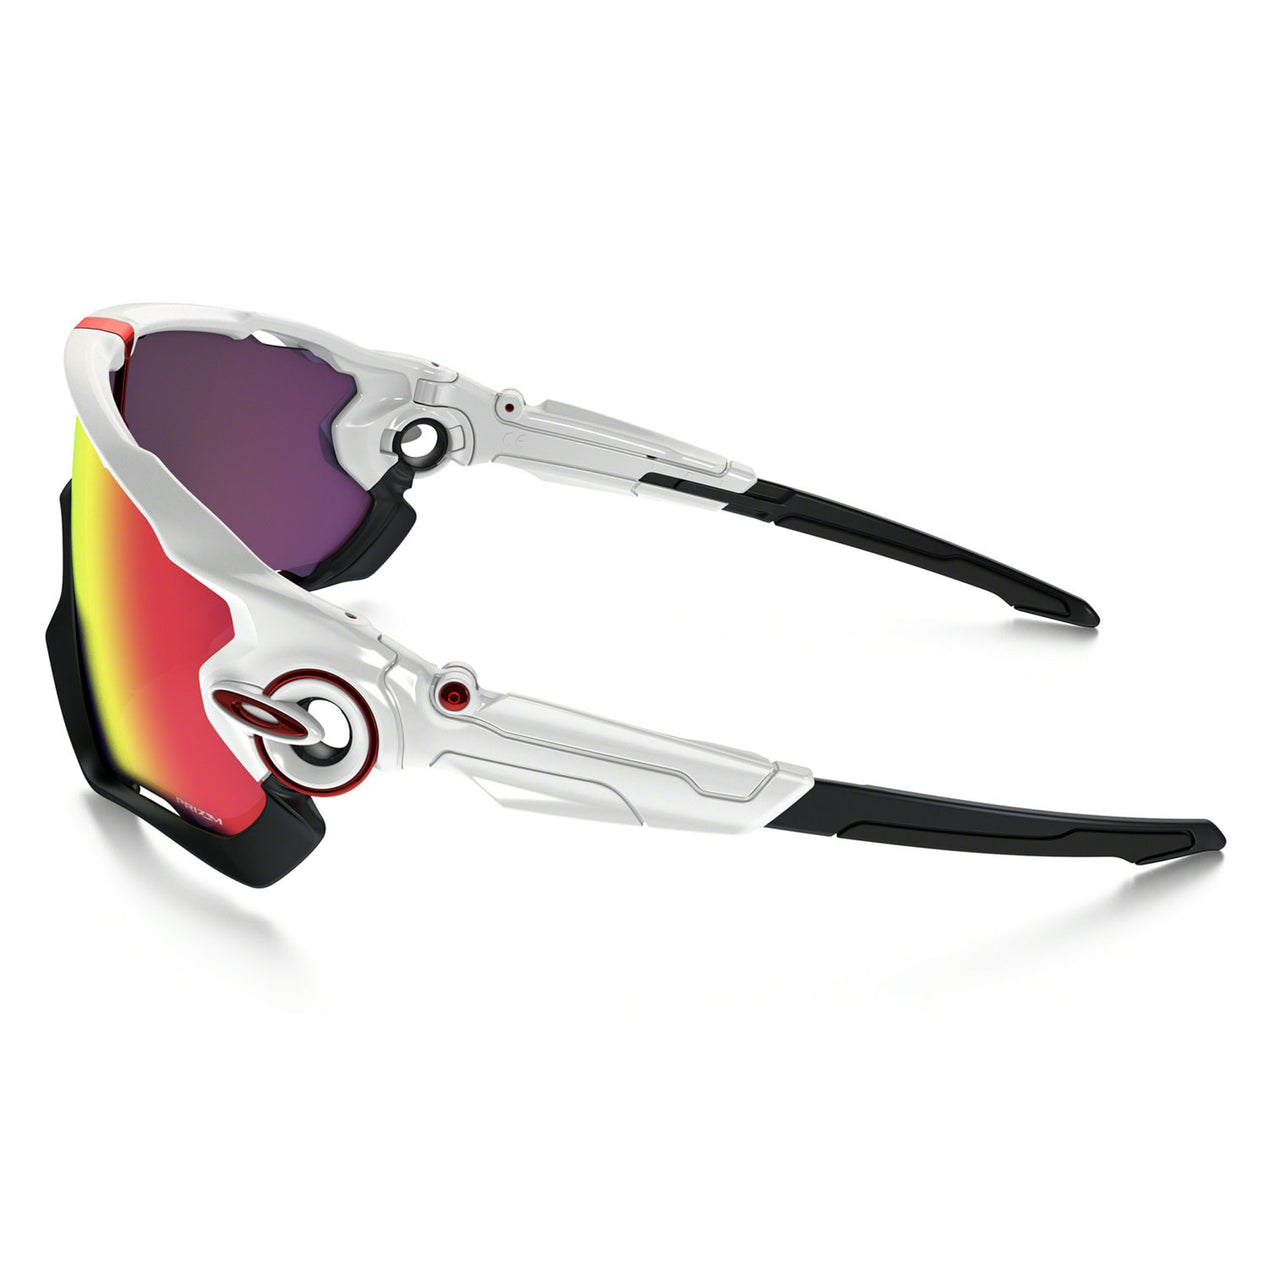 80b7524d82f Oakley Jawbreaker - Polished White - Prizm Road Lens Sunglasses ...